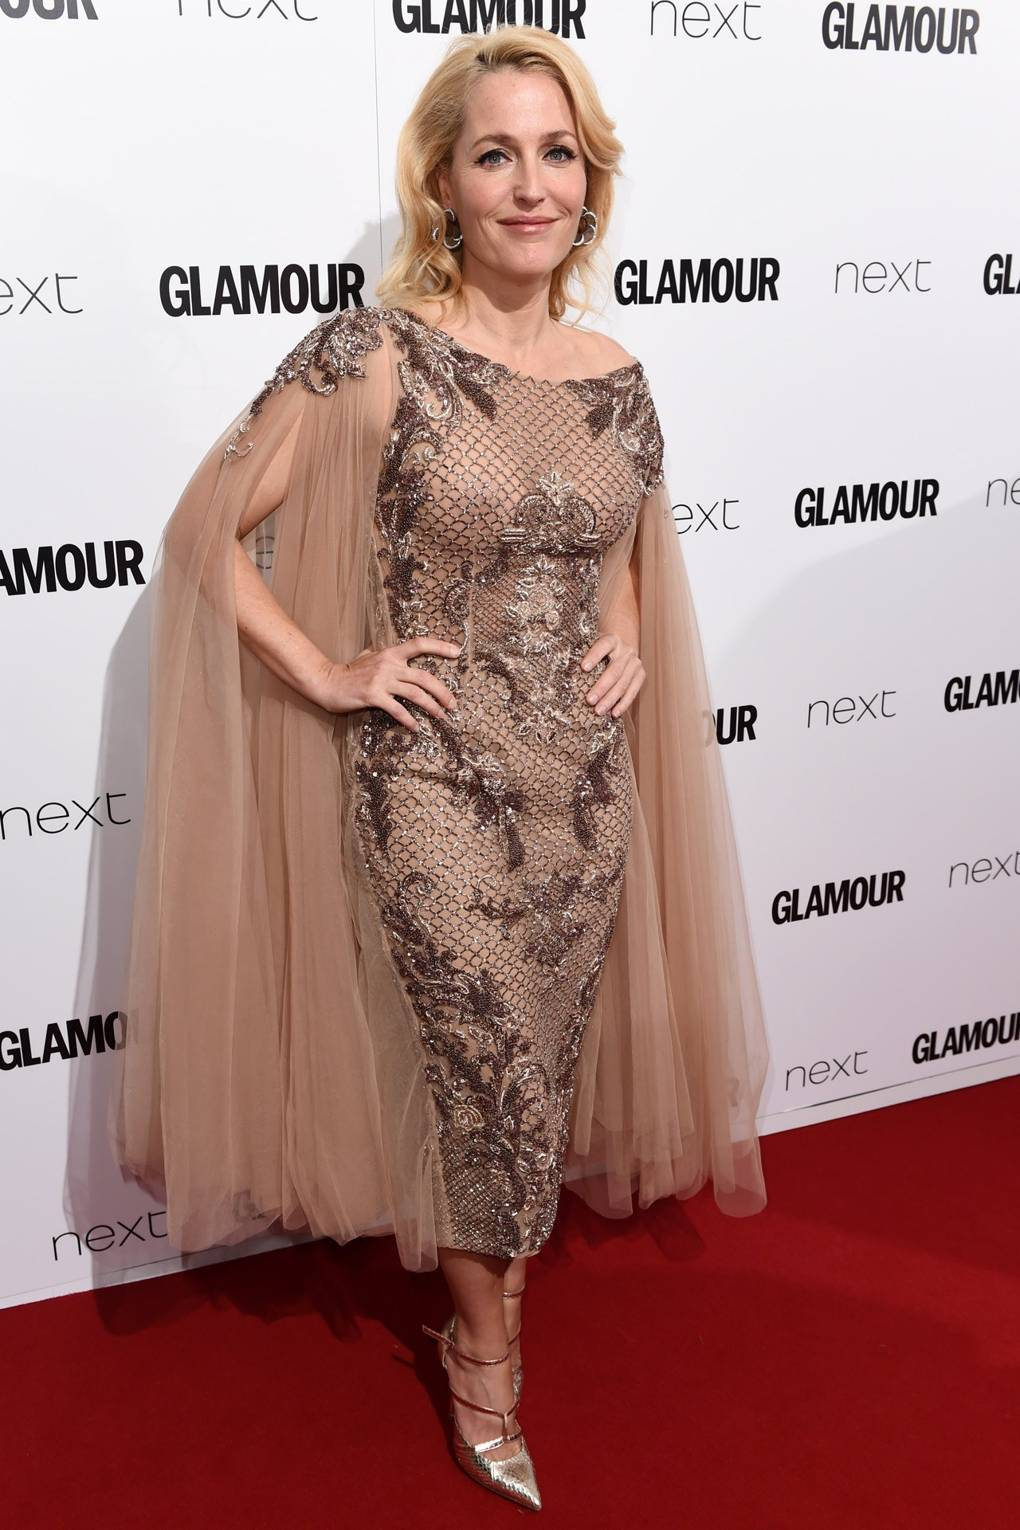 Gillian Anderson GLAMOUR Awards 2015 – Theatre Actress of the Year ...